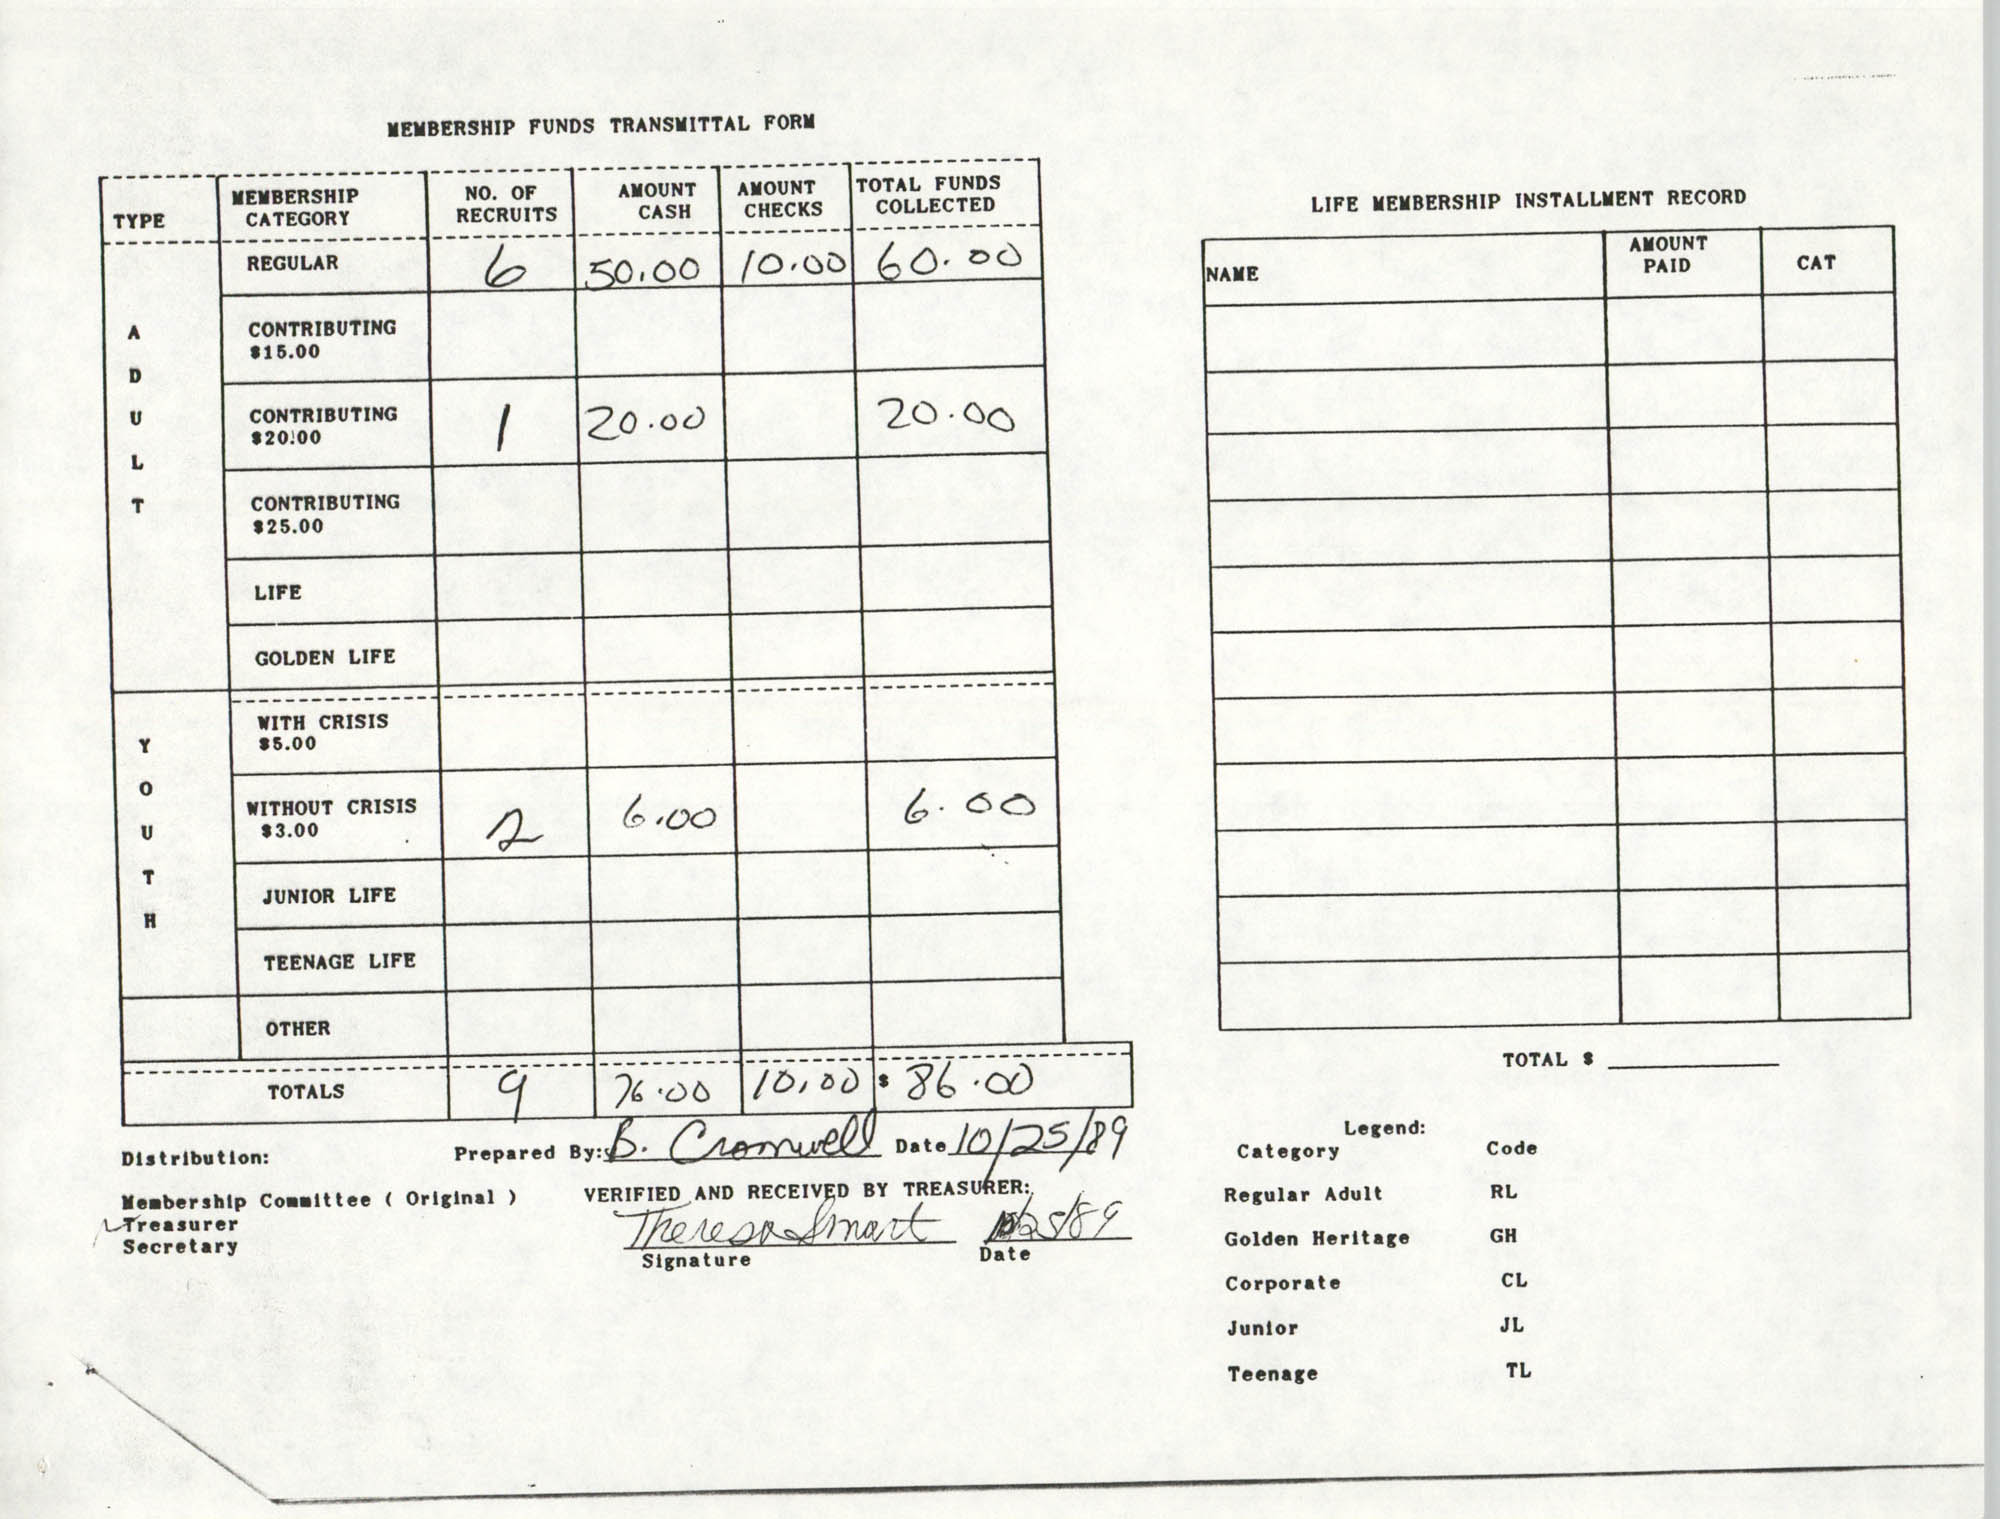 Charleston Branch of the NAACP Funds Transmittal Forms, October 1989, Page 8